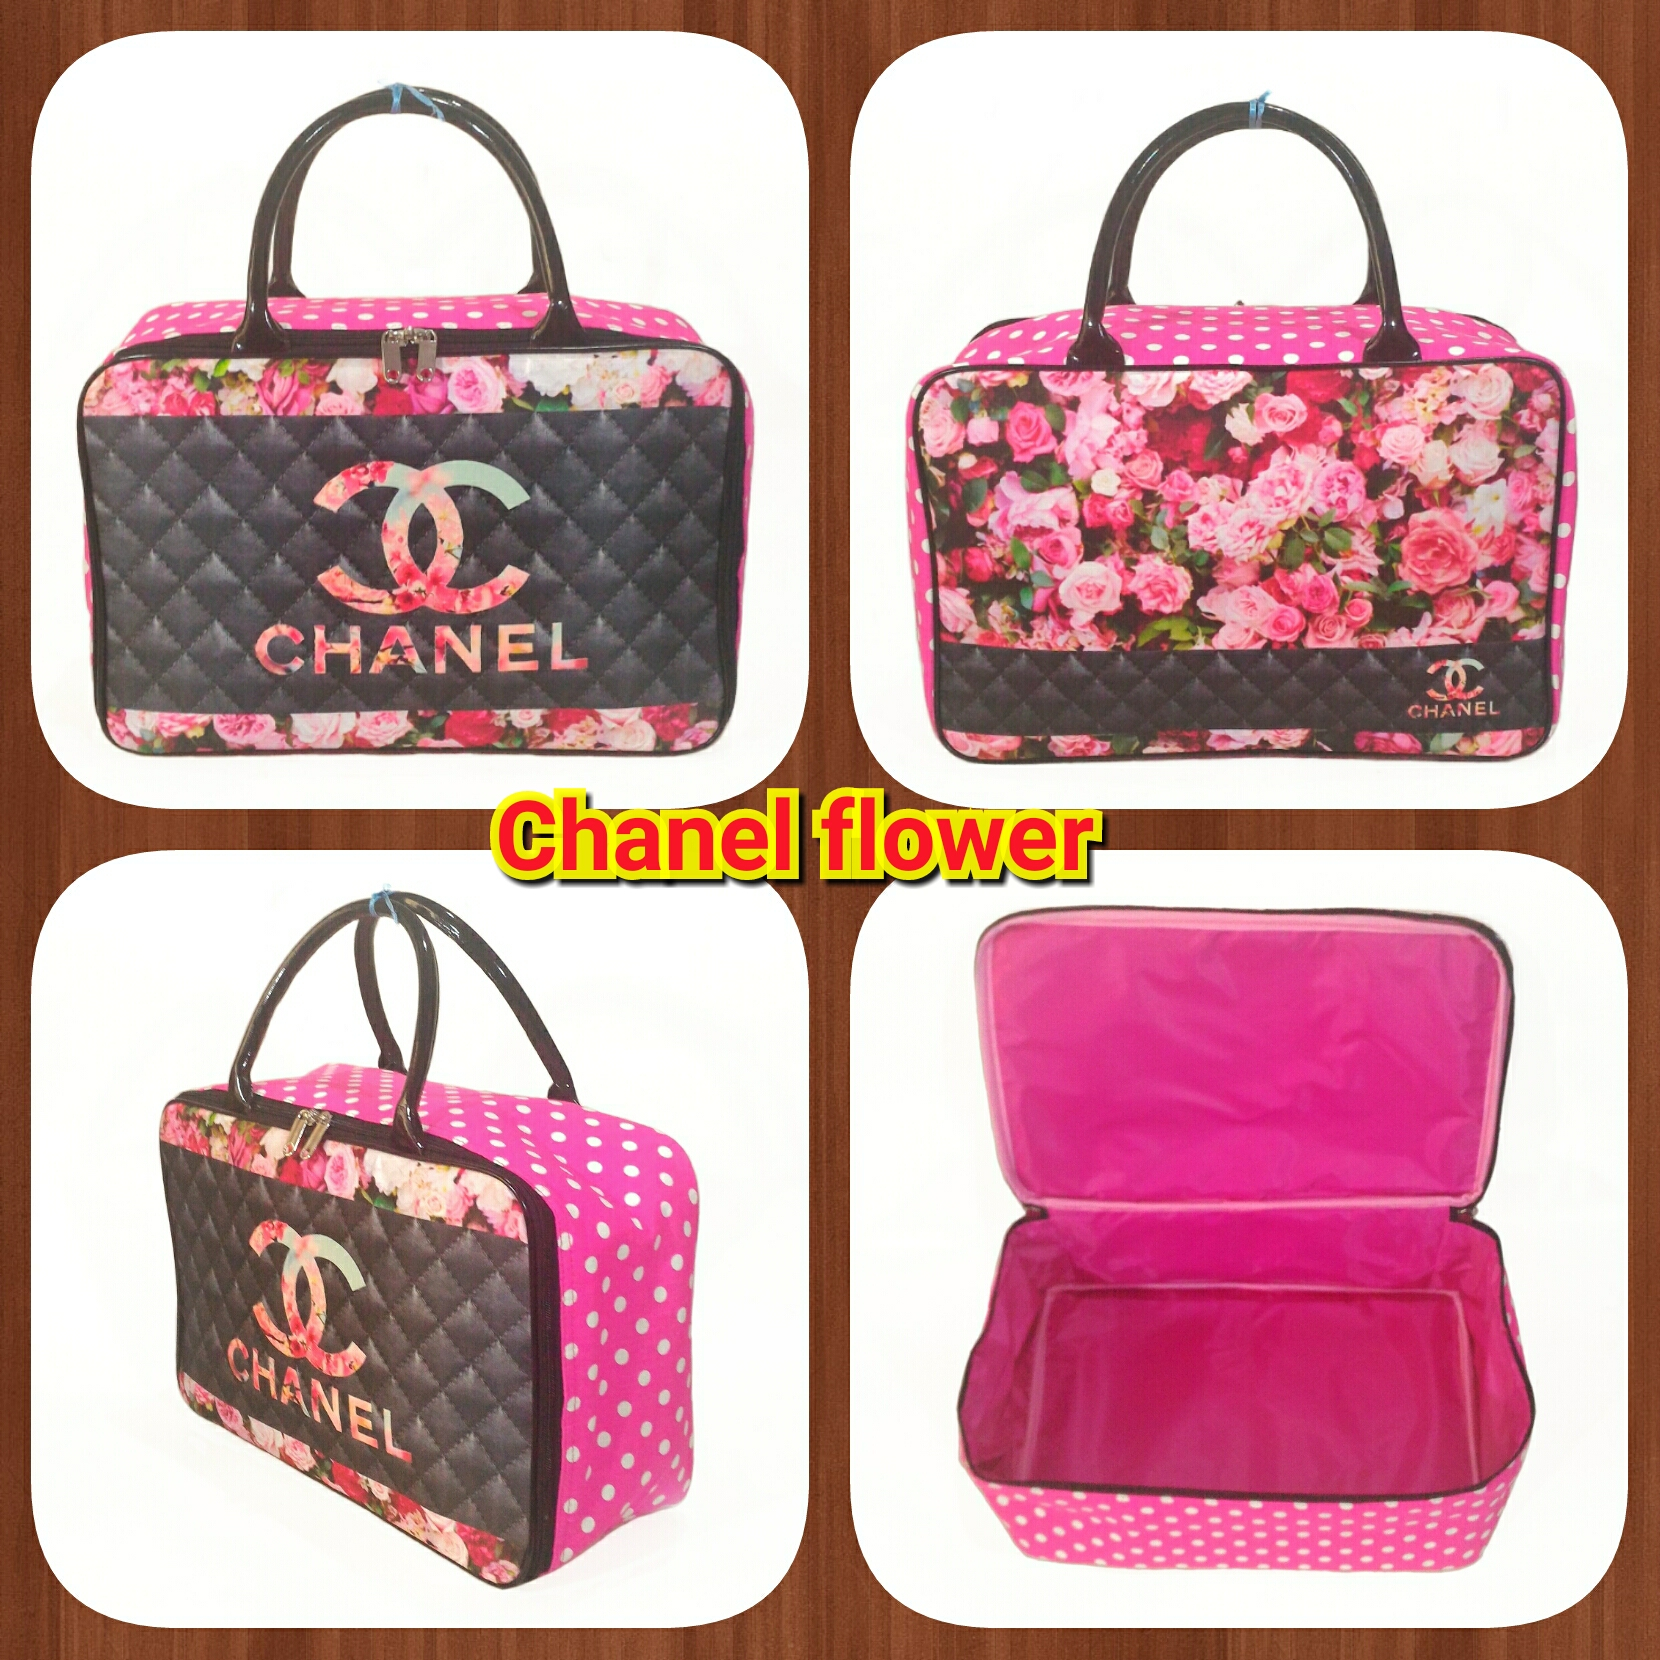 c047264039 Amt Tas Travel Bag Kanvas Bunga Ros Pink Besar Serbaguna Weekend Travelling  Handcarry Pesawat